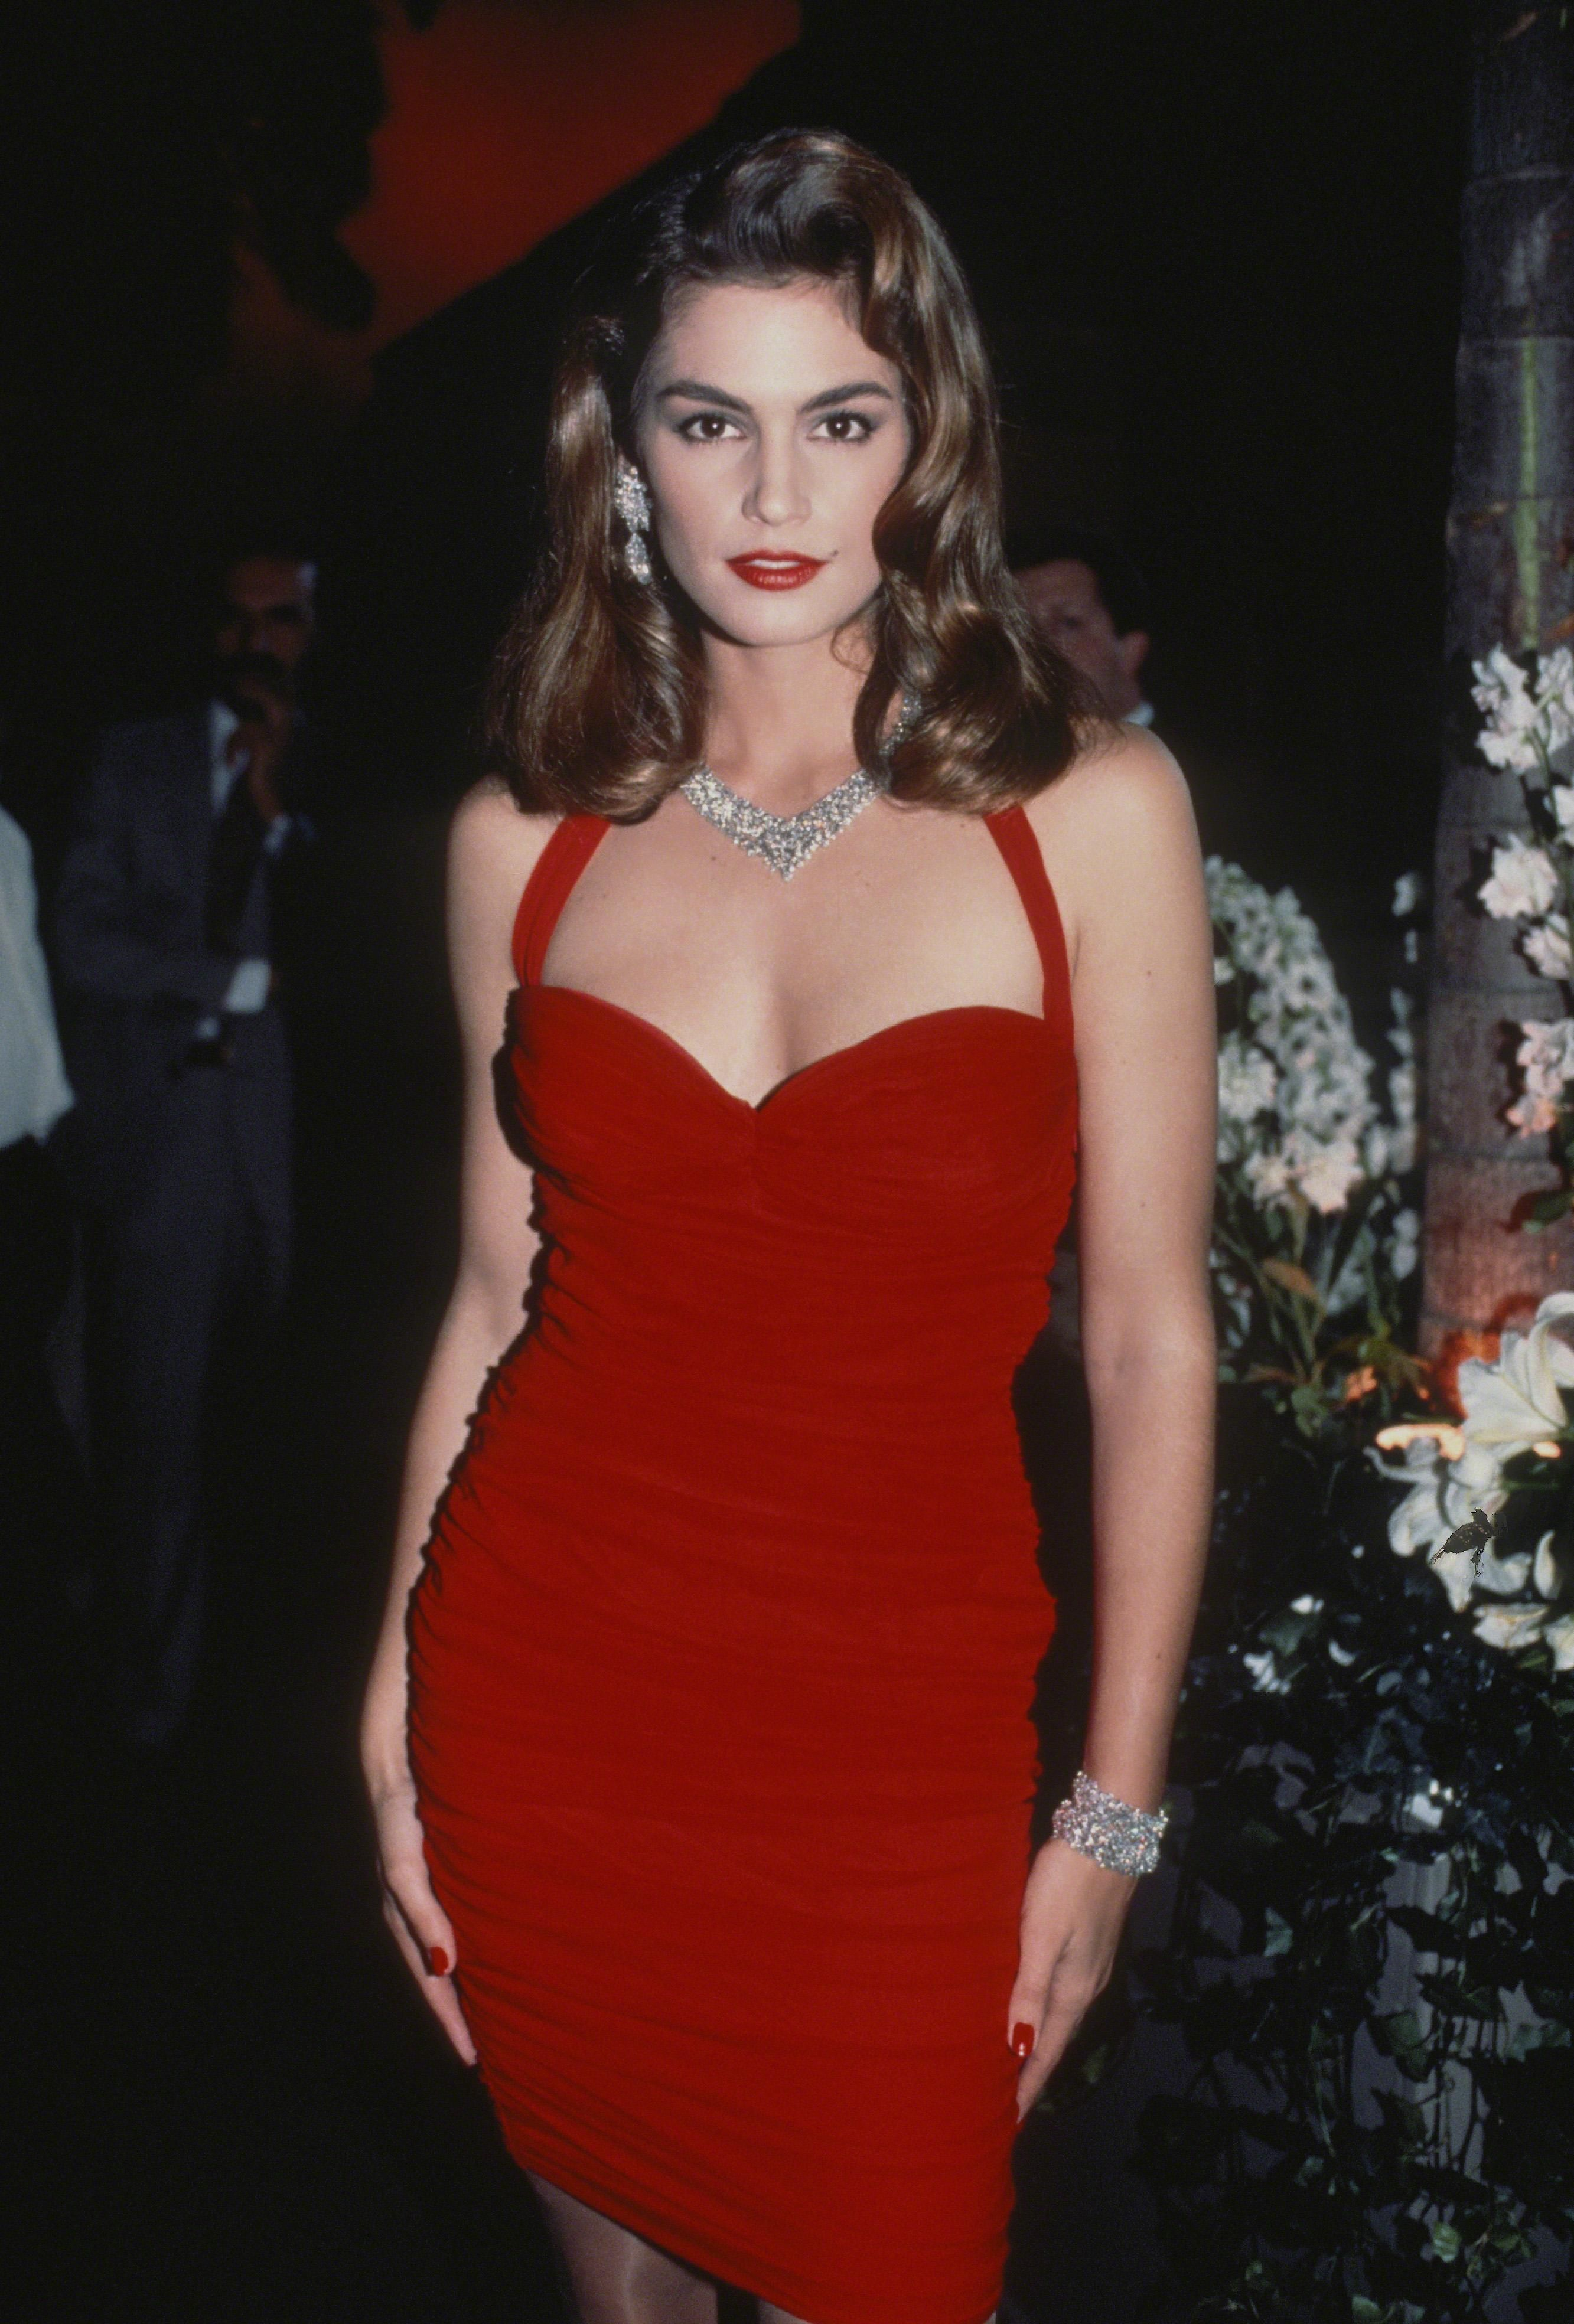 21 Incredible Vintage Photos of Cindy Crawford to Celebrate HerRetirement